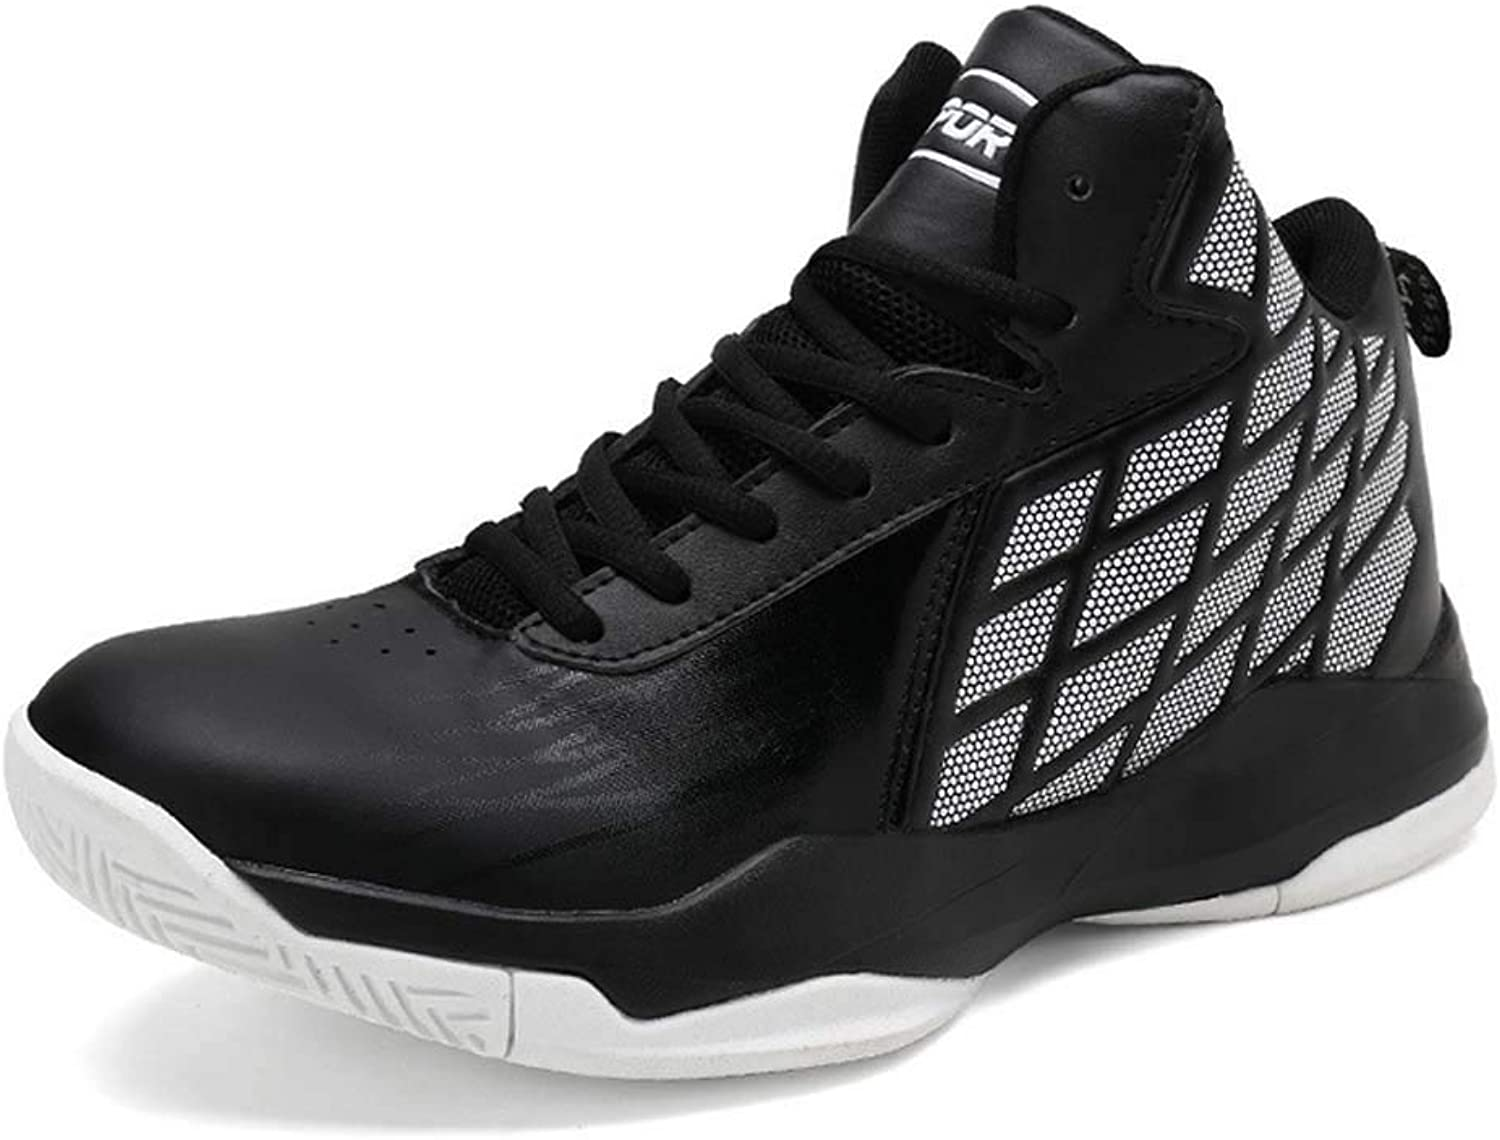 GLSHI Men Basketball shoes 2018 New Cushioning Hi-Top Sneakers Youth Athletic shoes